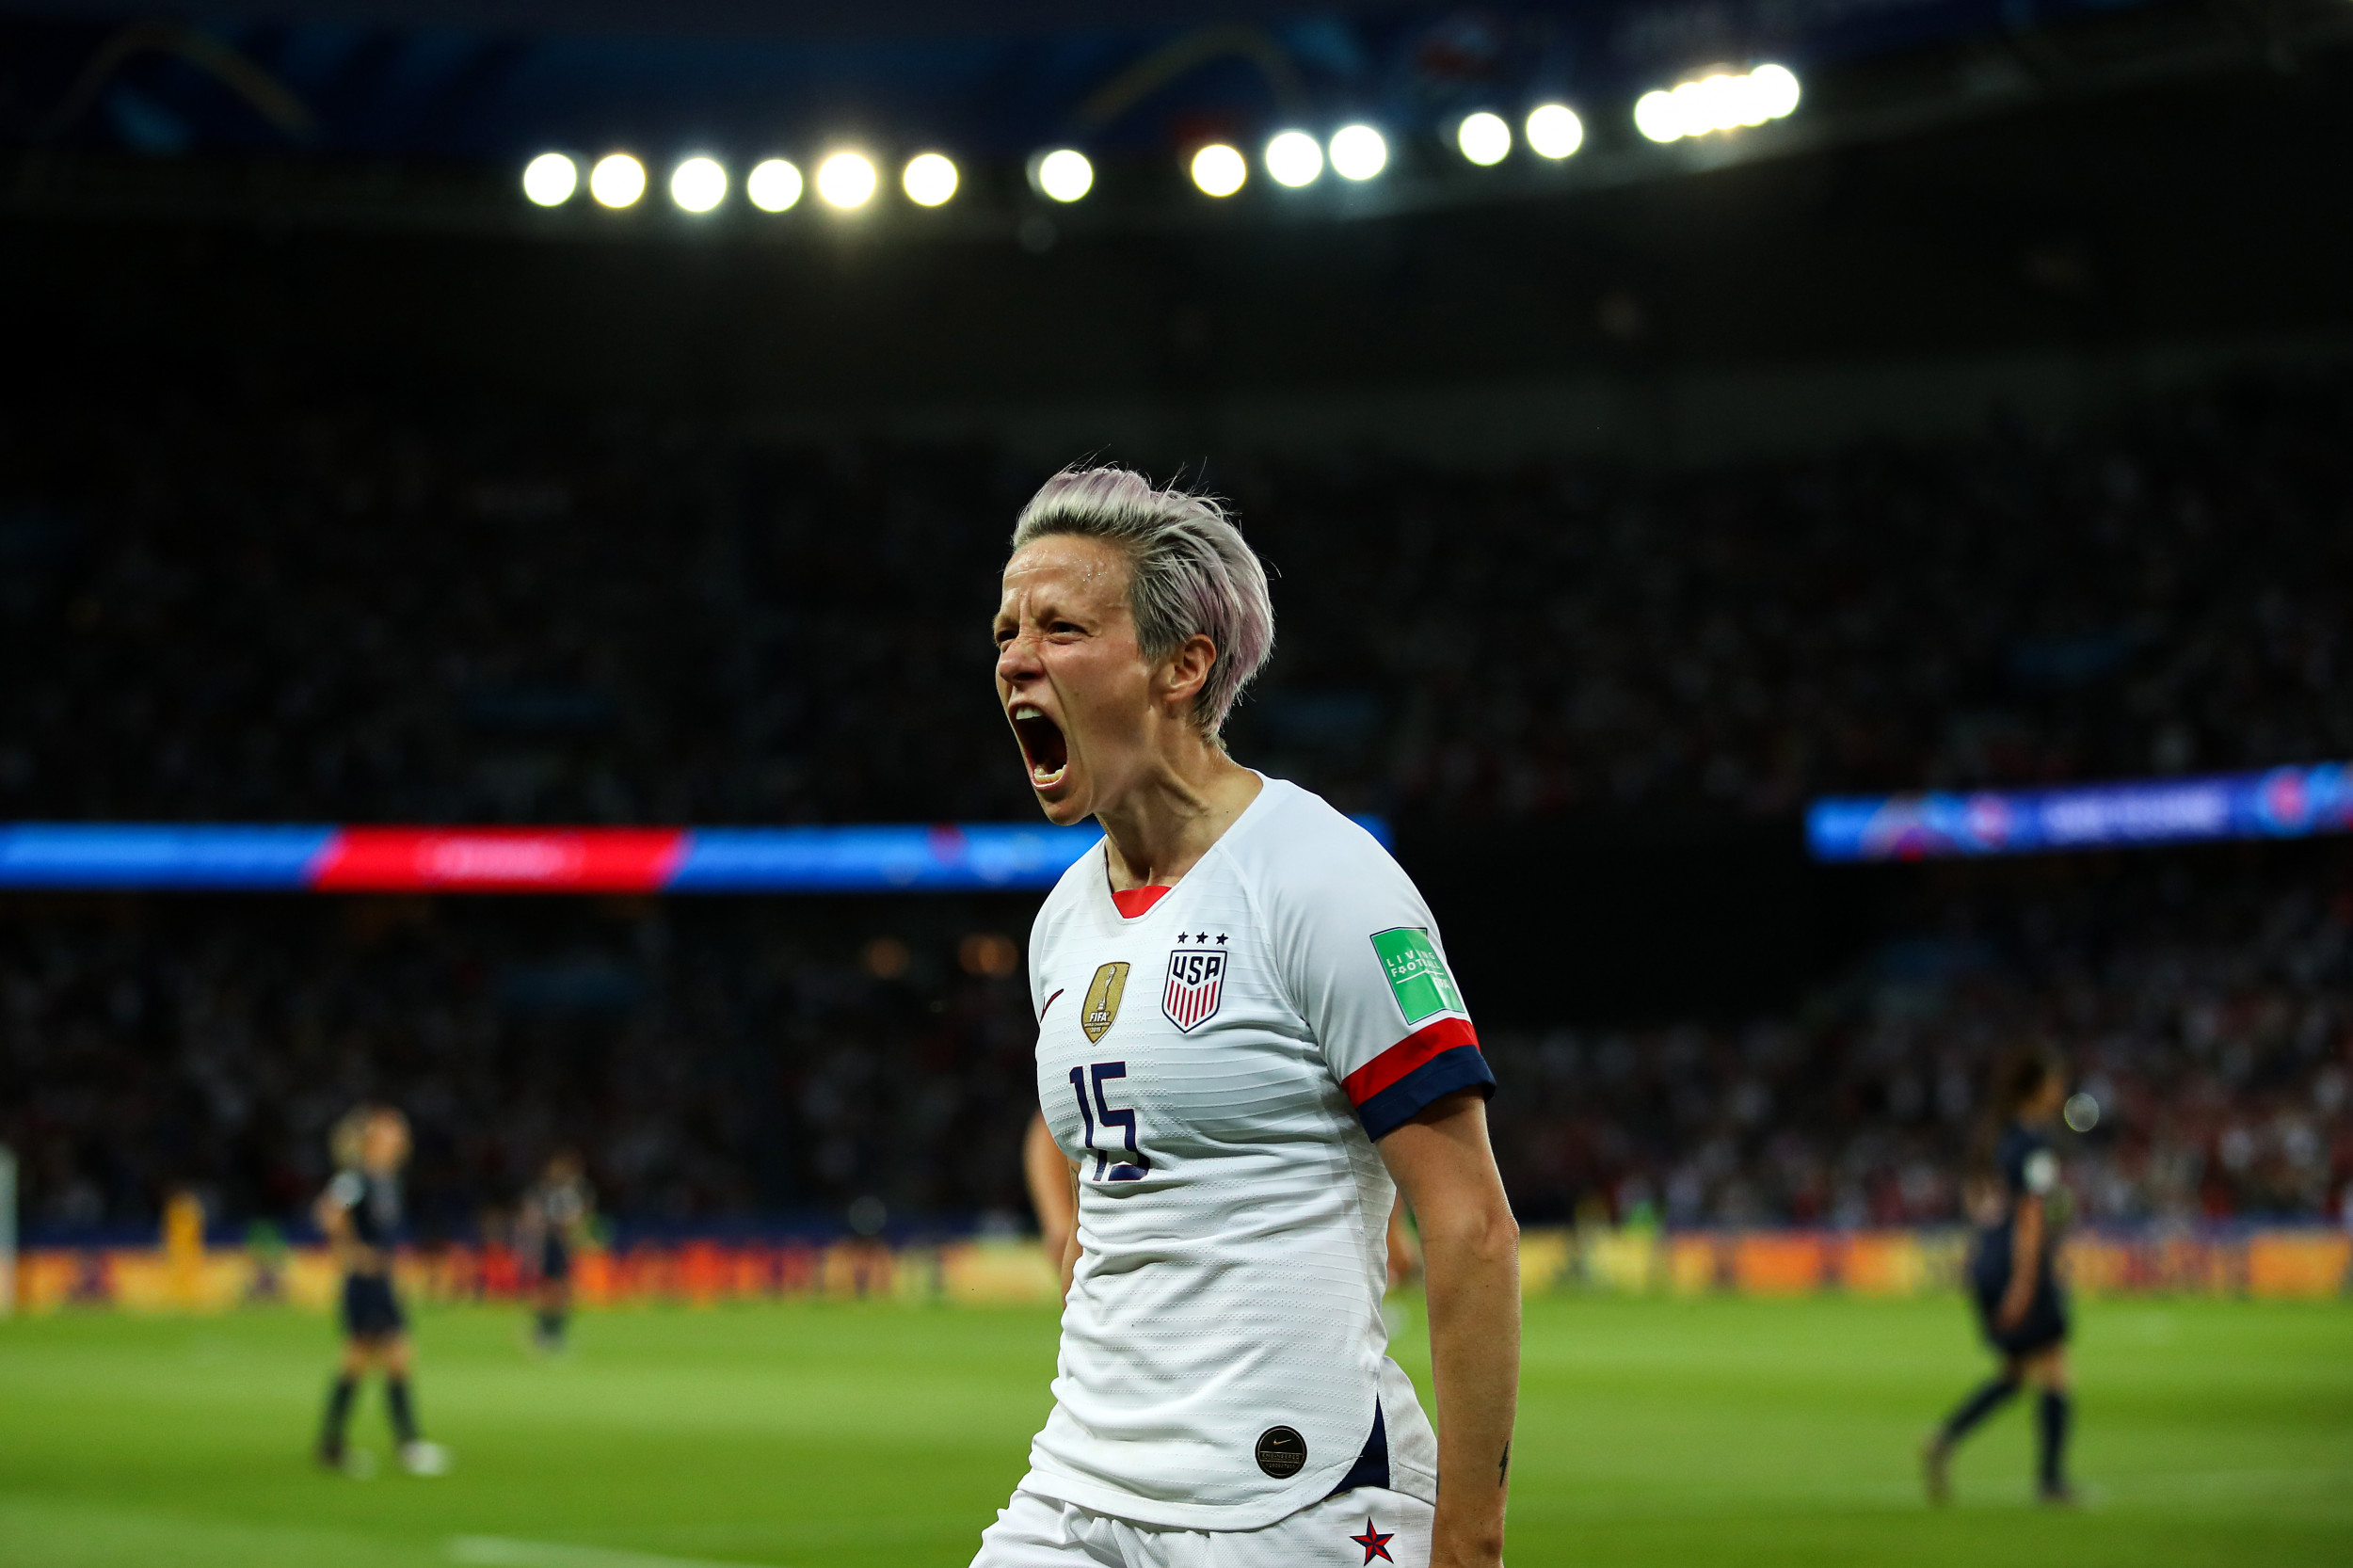 Twitter Flooded with Megan Rapinoe Memes, Jokes after Soccer